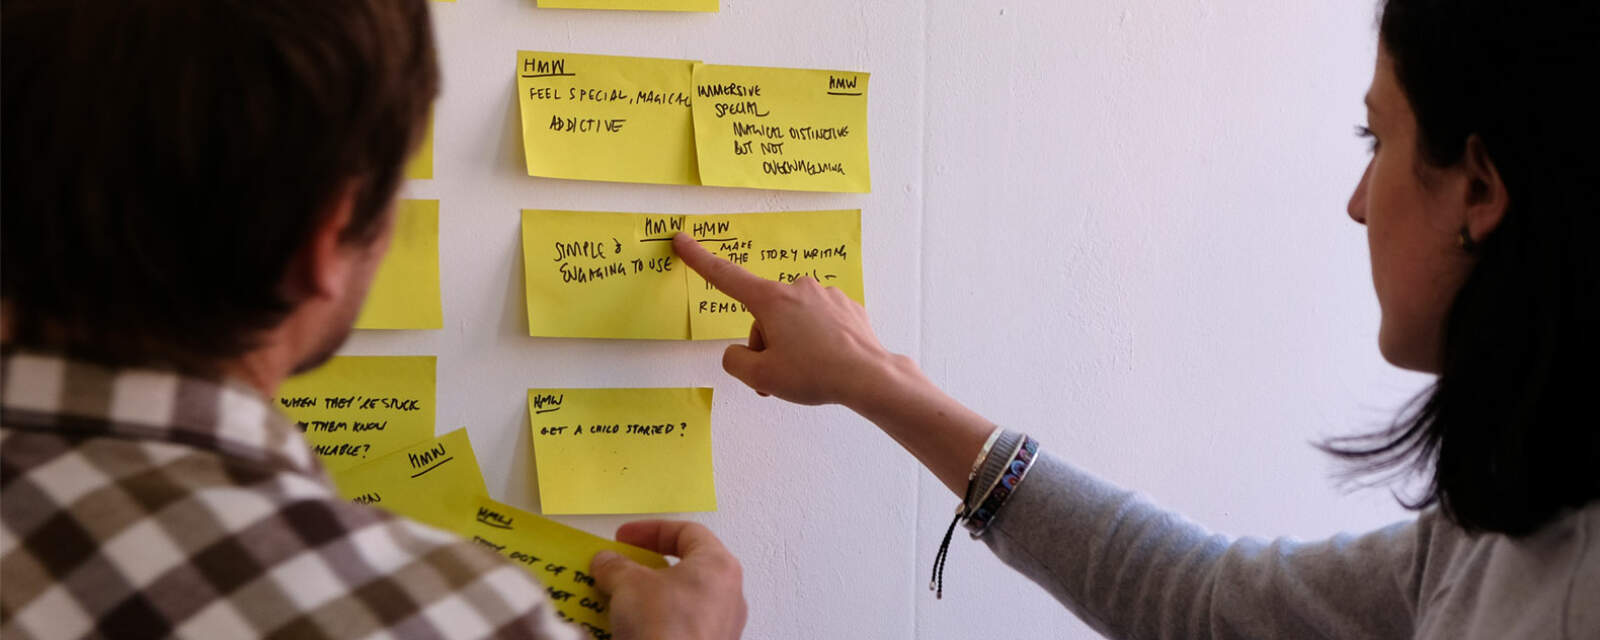 Sticking notes to the wall during a pathfinding workshop for Fabled kids' story telling platform.